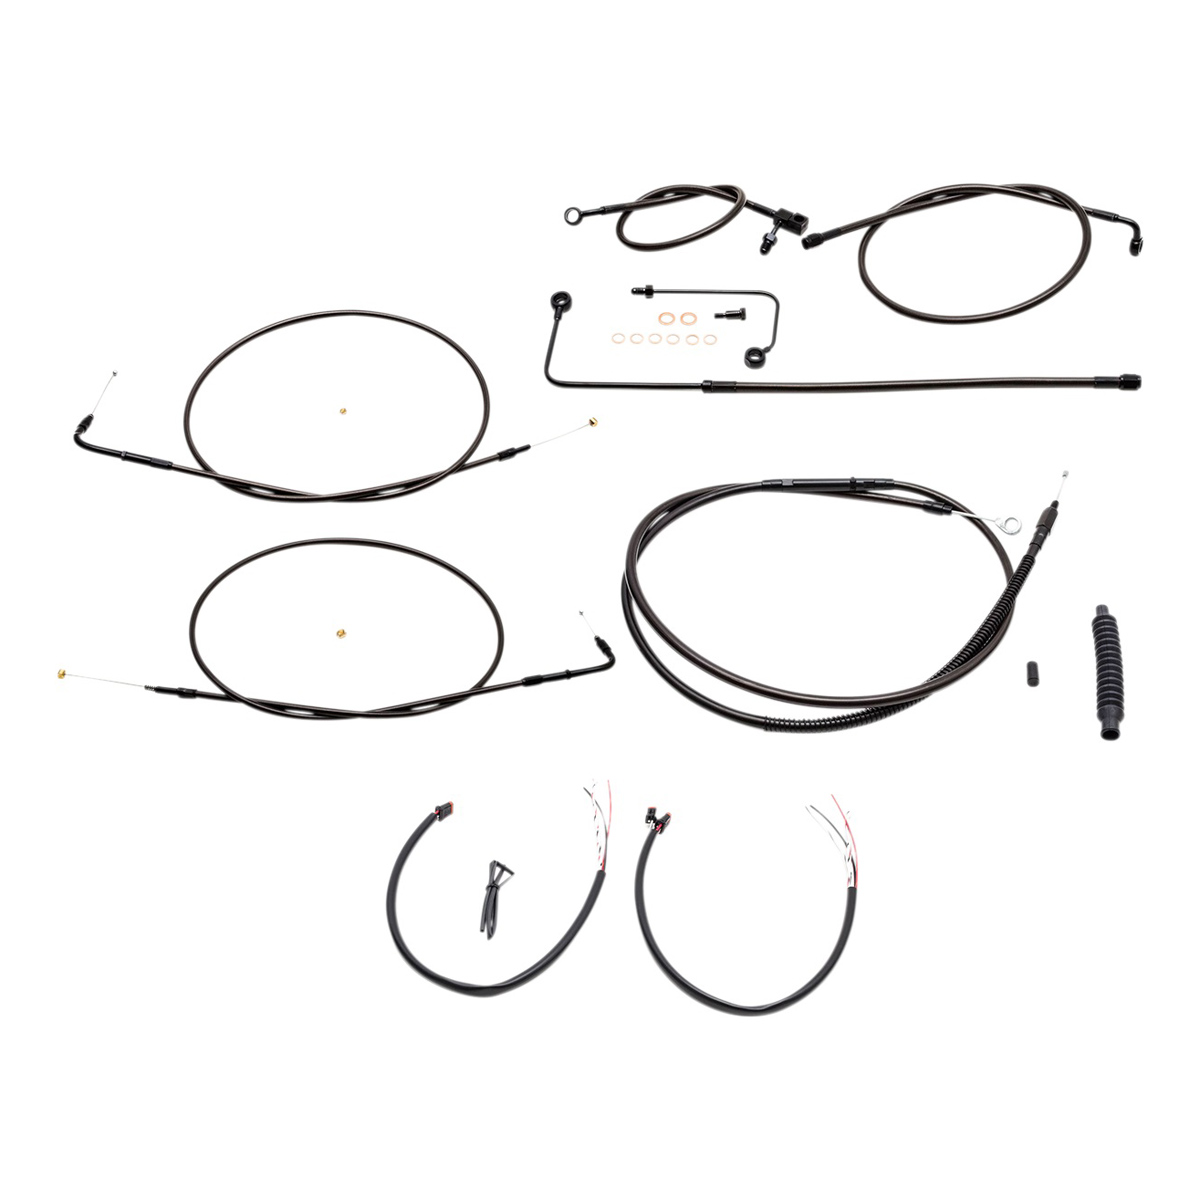 La Choppers Midnight Complete Cable Line Wiring Handlebar Kit For 18 20 Bars On Models With